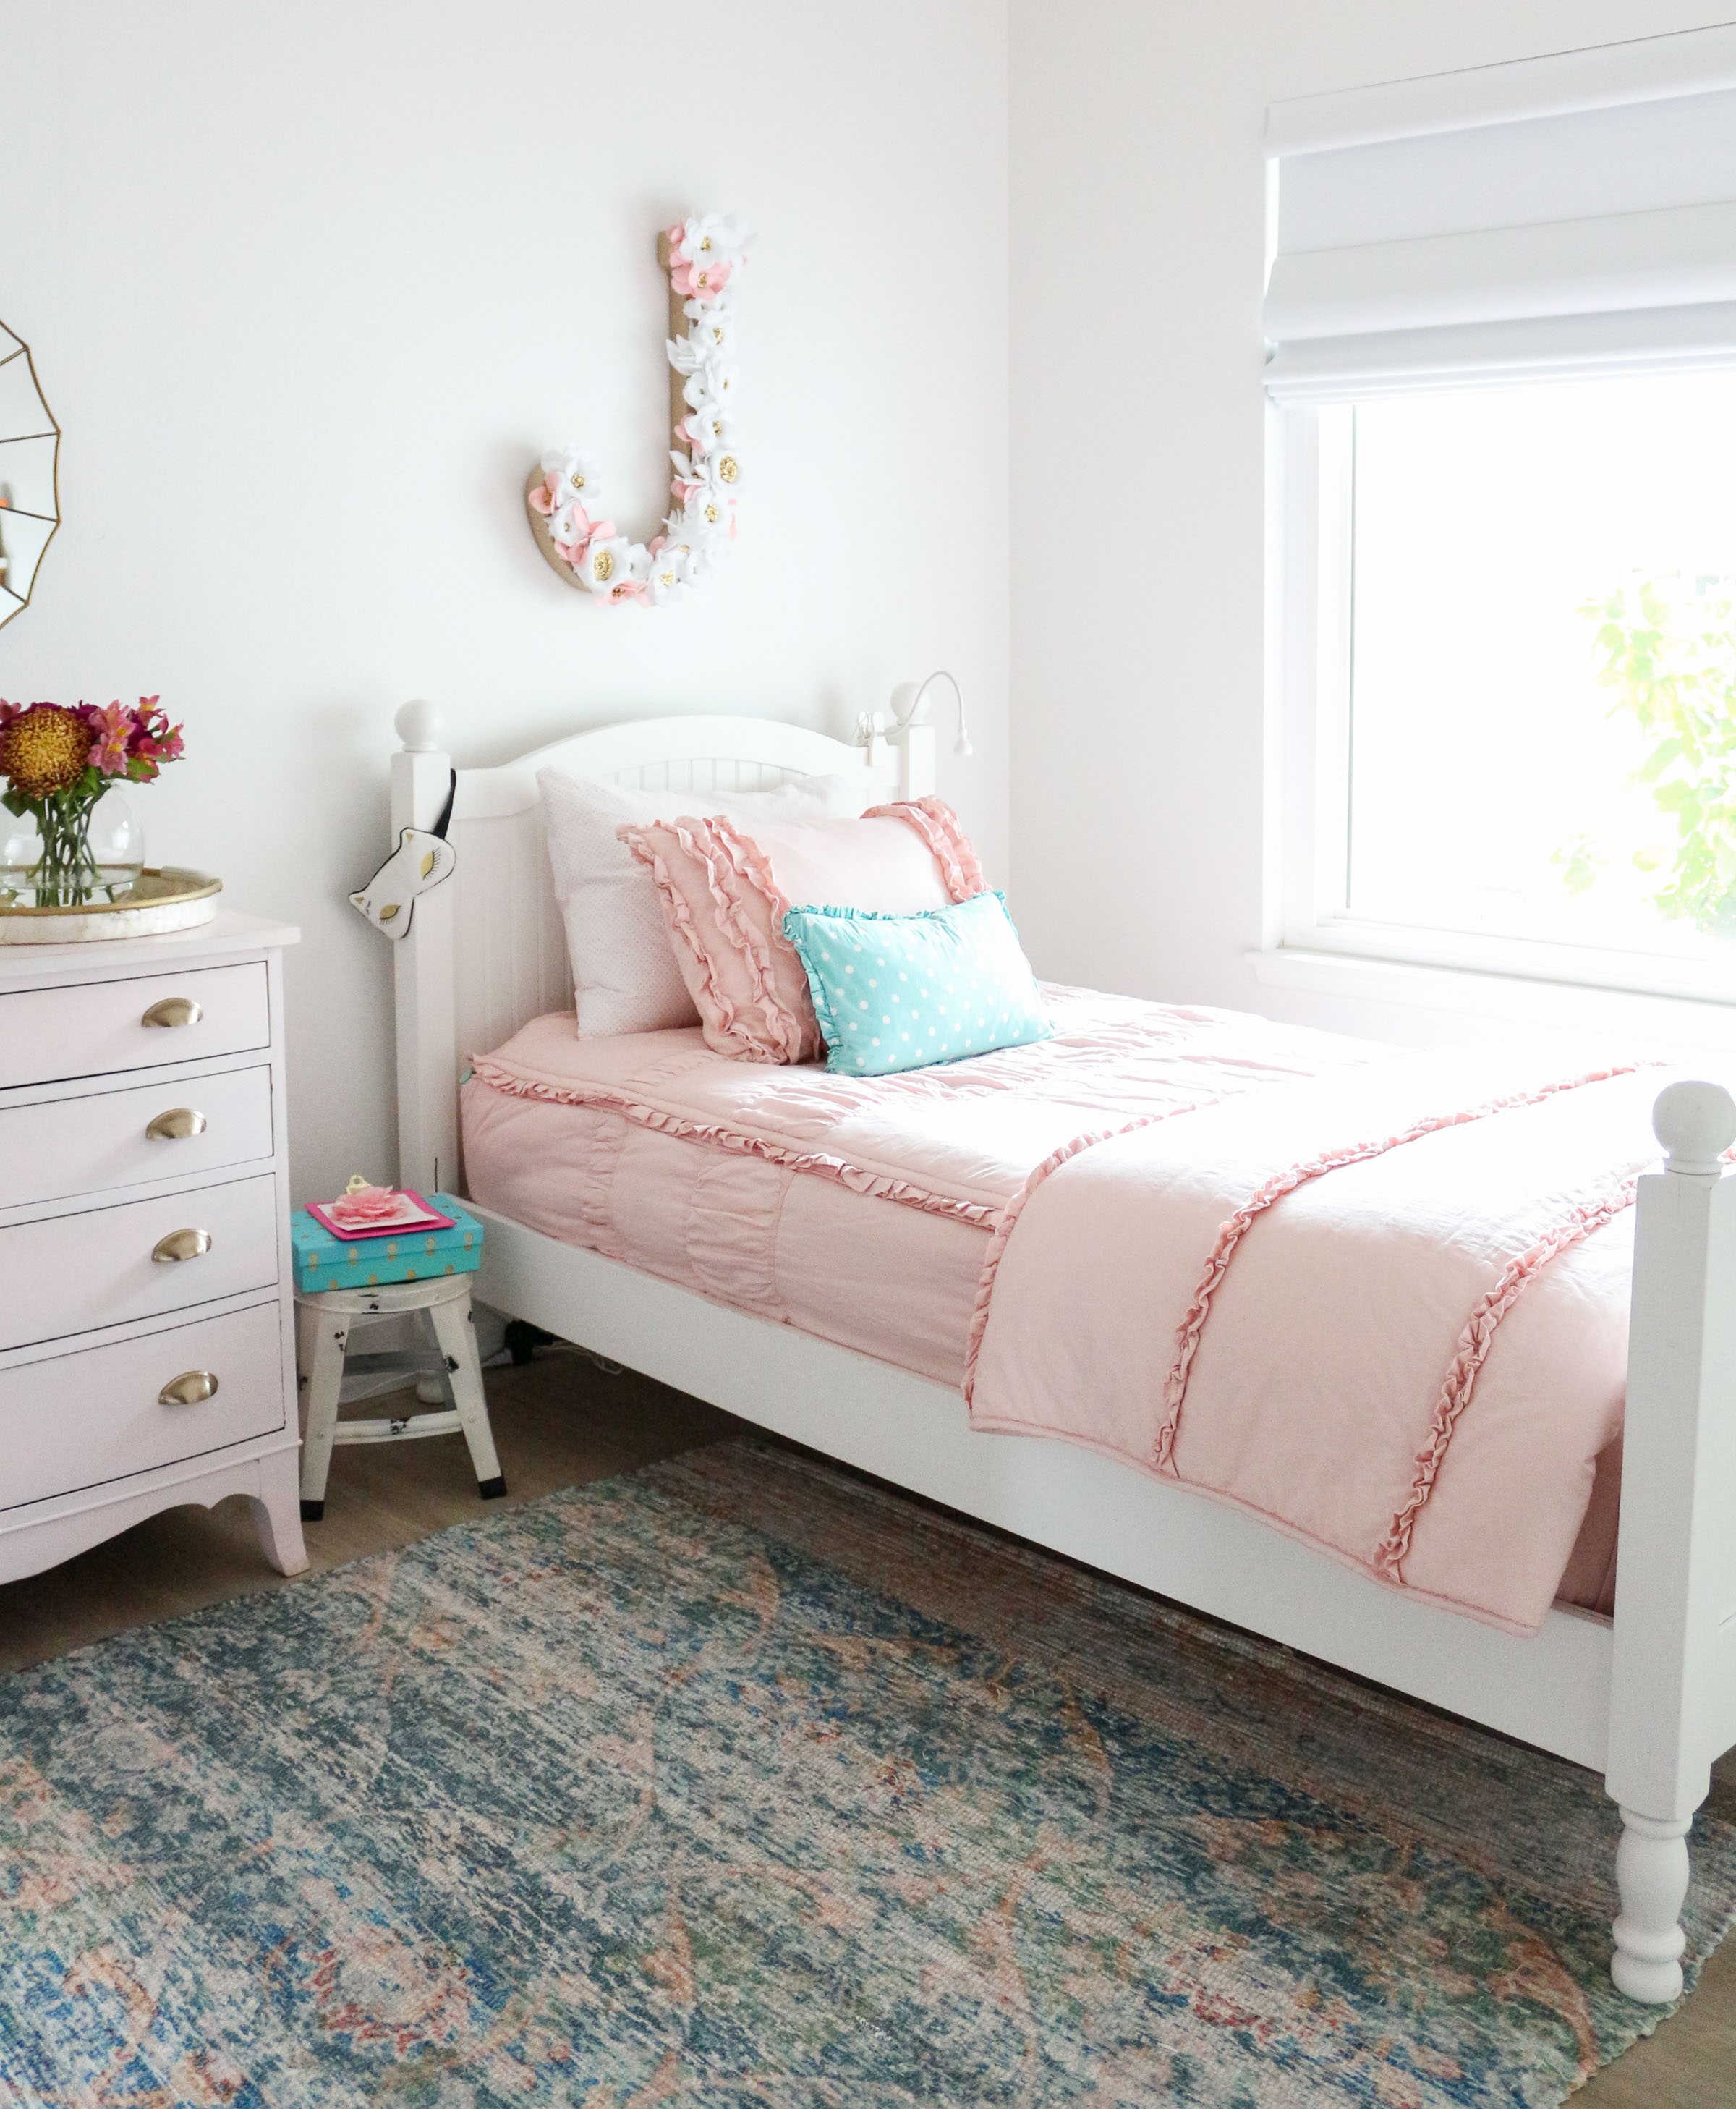 Girls shared bedroom why we love our blush pink ruffle bedding from beddy 39 s - Pink and white teenage room ...